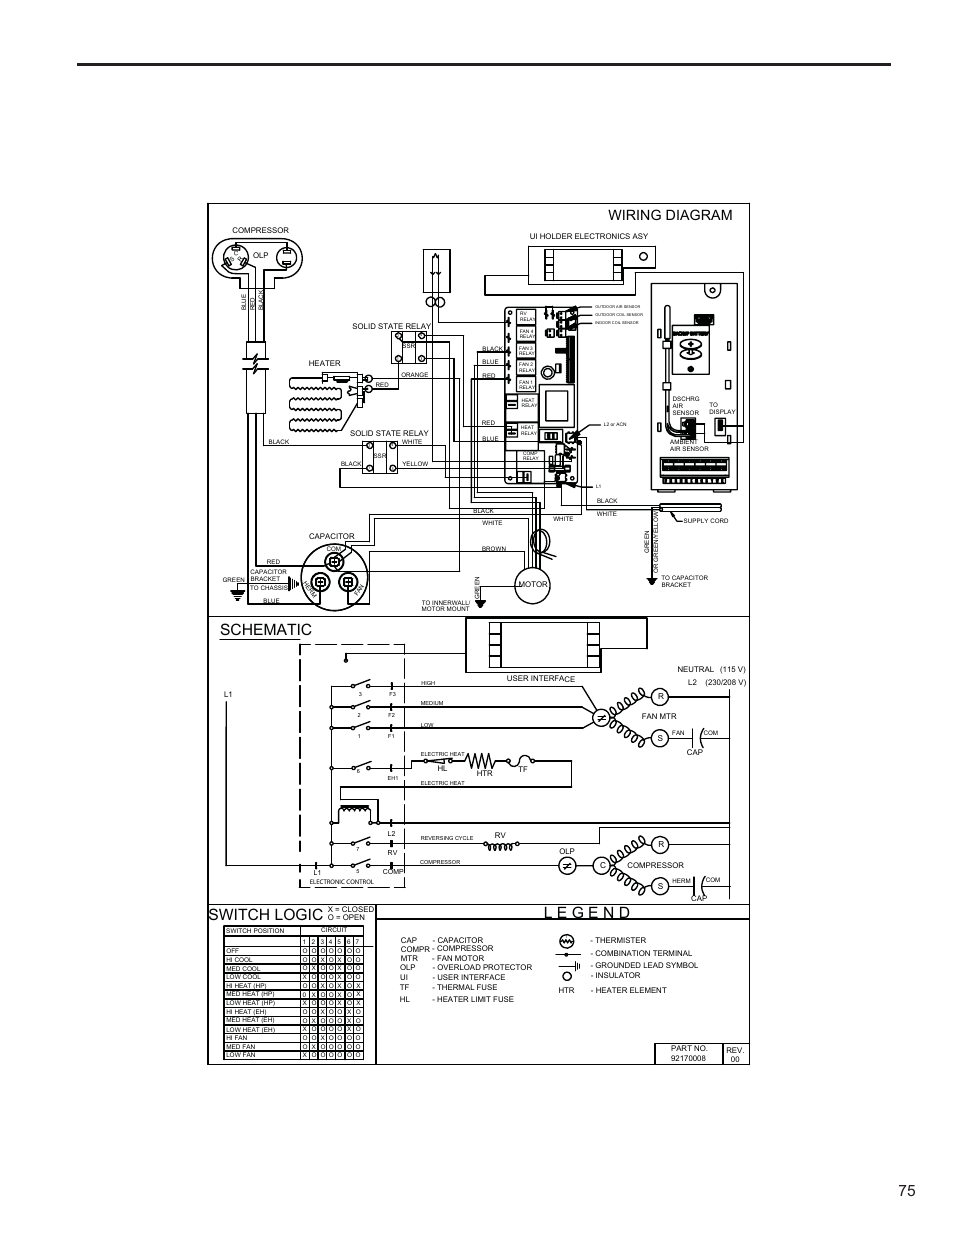 Friedrich Wiring Diagram Schematics M5350 Rheem Schematic Switch Logic Kuhl R 410a User Weber Diagrams